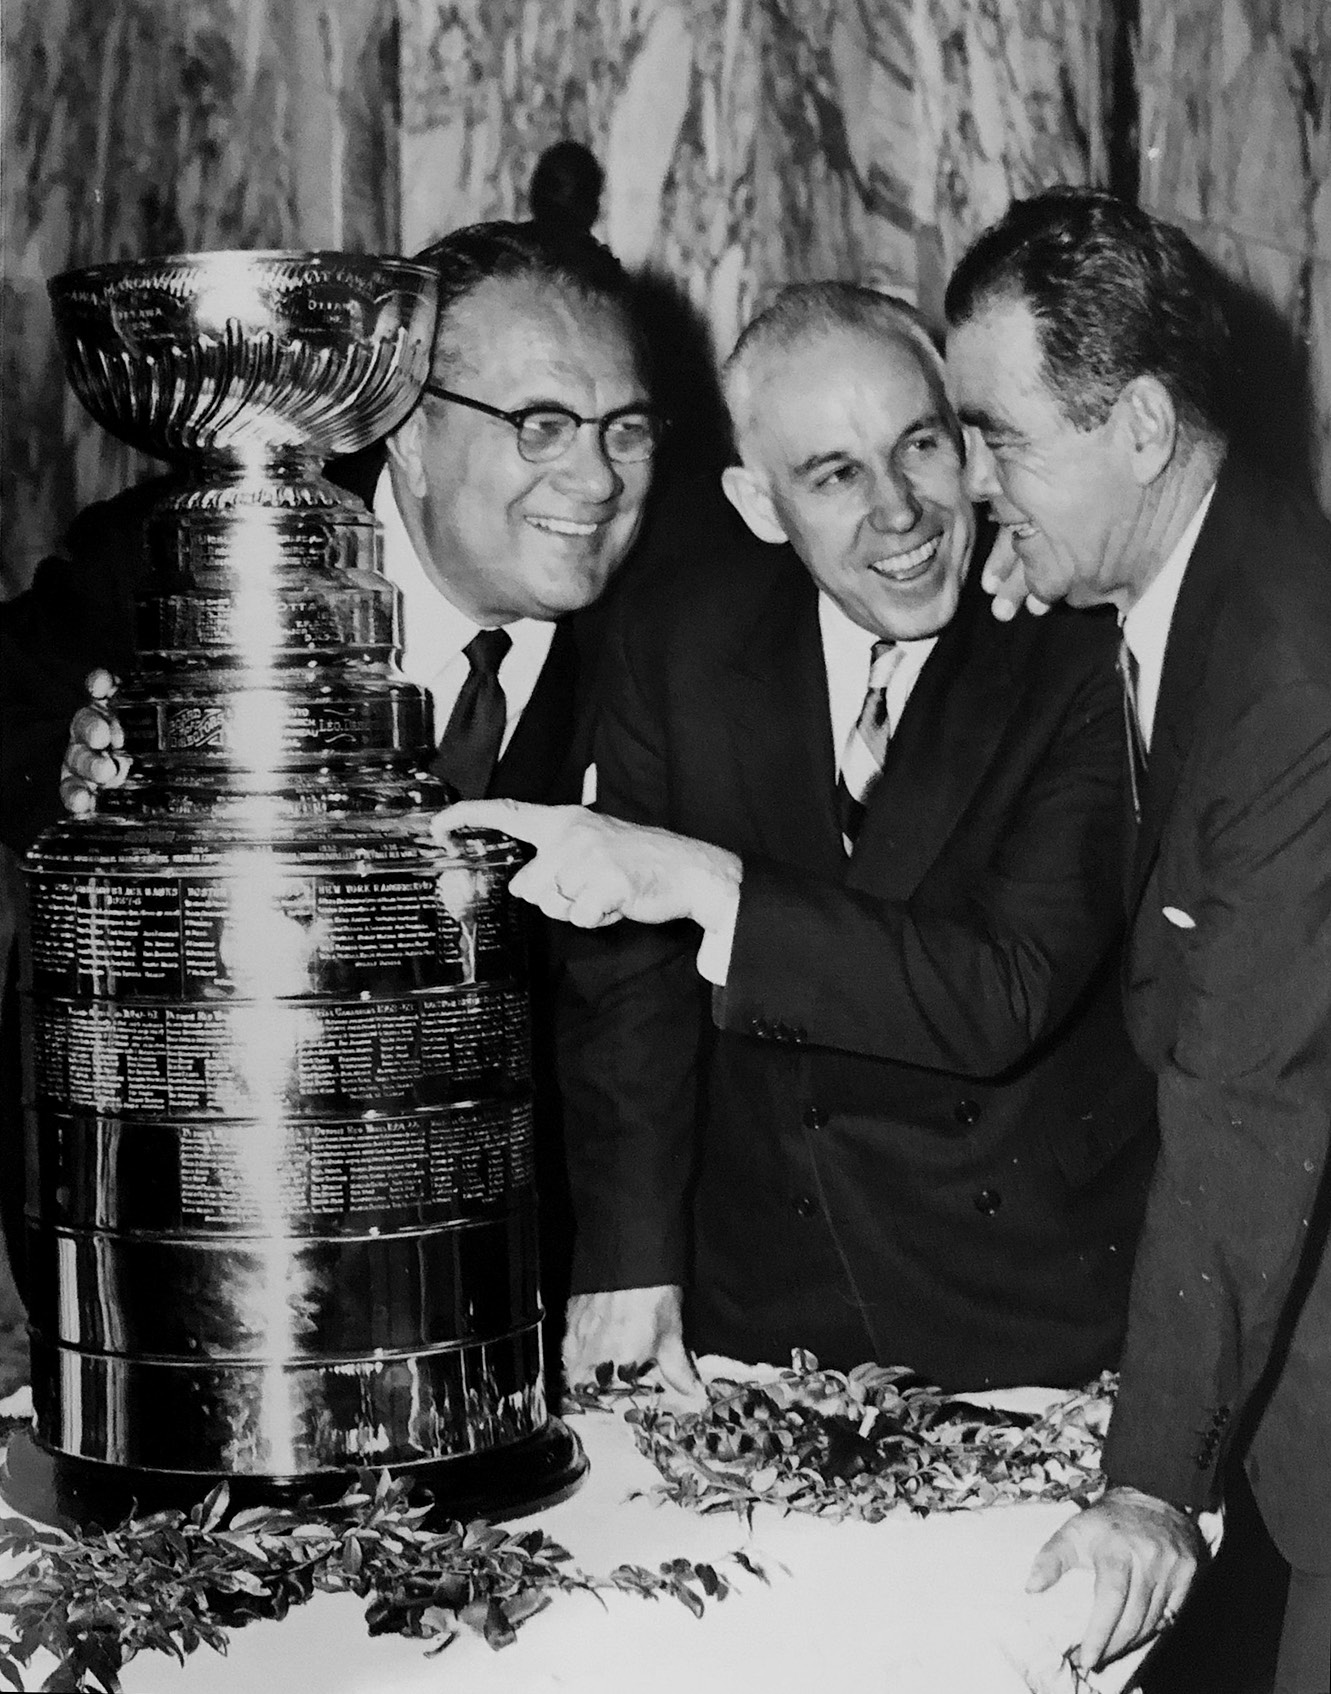 Arthur, NHL president Clarence Campbell, and Jimmy Norris with the 1961 Stanley Cup after the Blackhawks championship run. It would be forty-nine years before the Blackhawks won another cup.